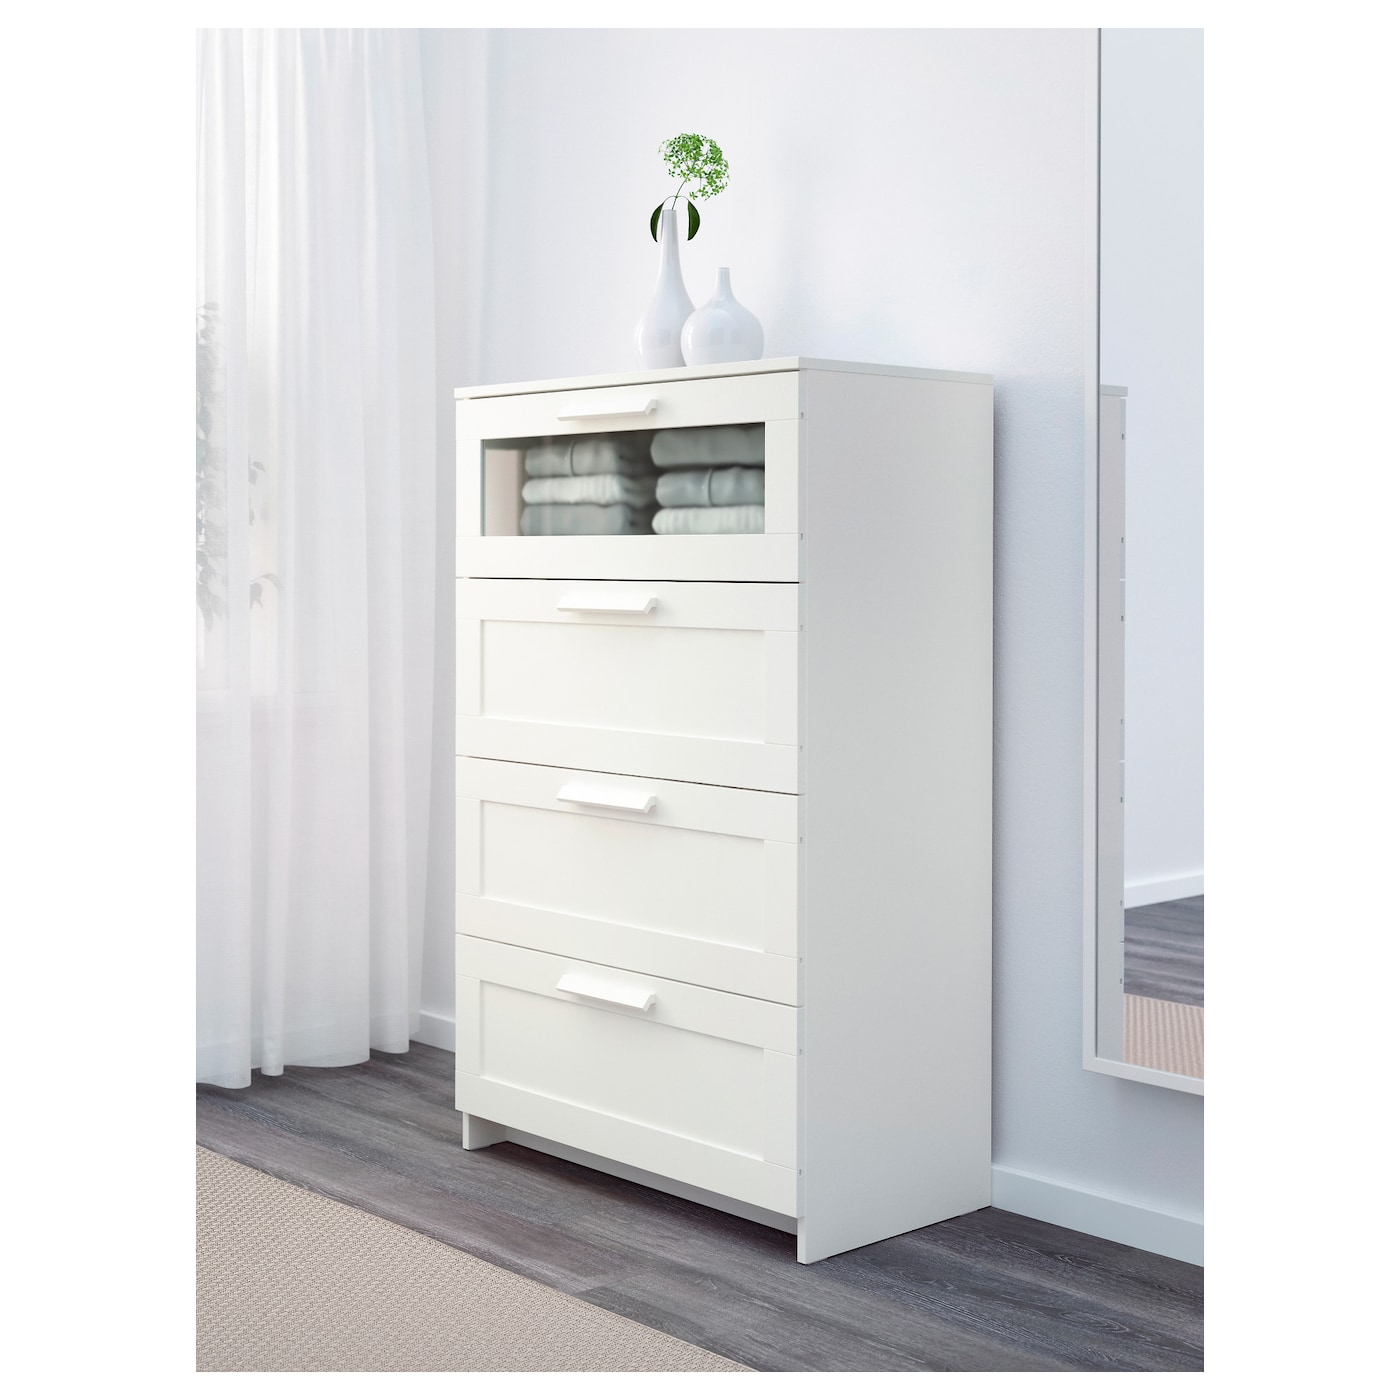 brimnes chest of 4 drawers white frosted glass 78x124 cm. Black Bedroom Furniture Sets. Home Design Ideas